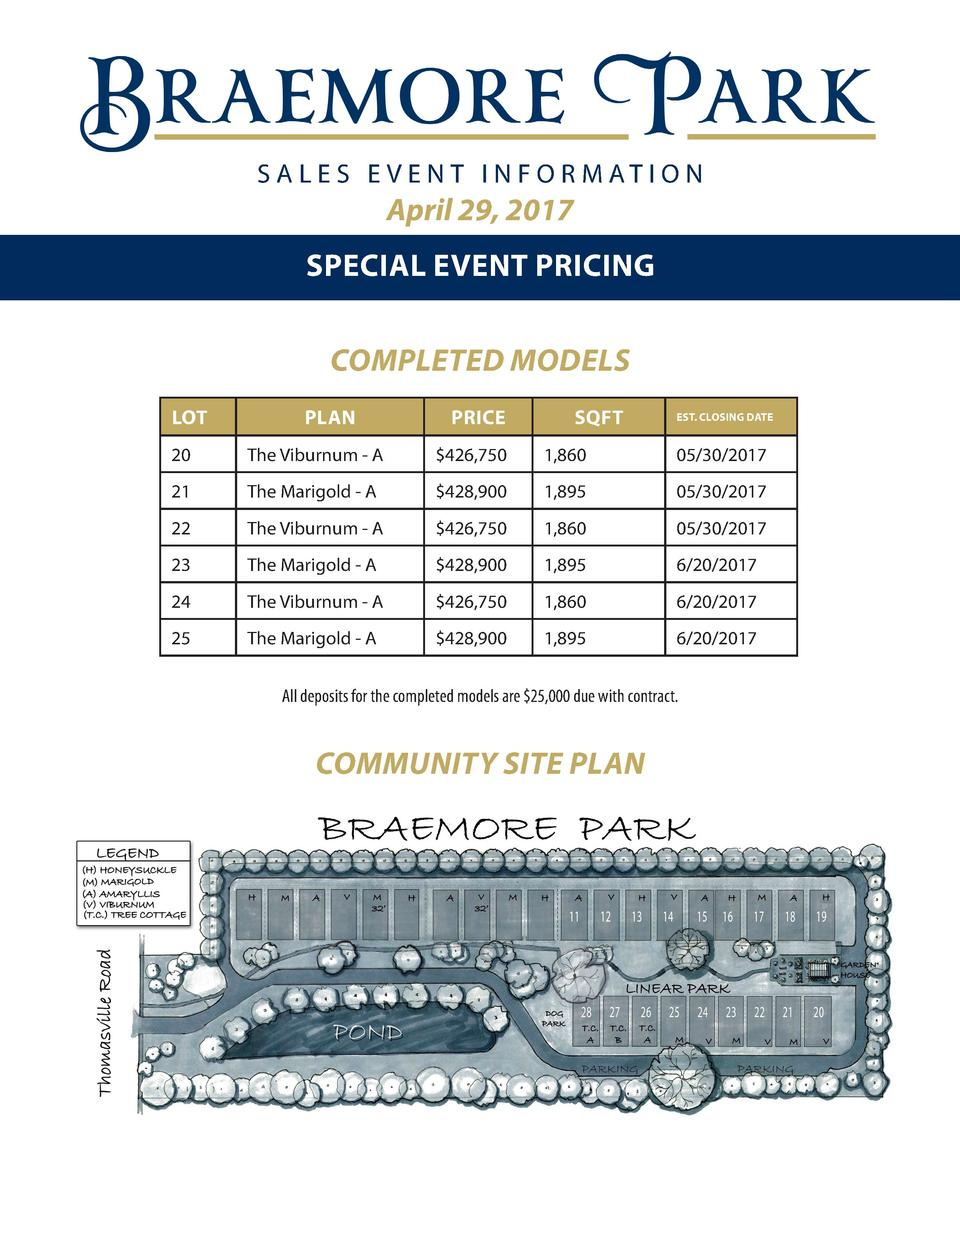 S A L E S E V E N T I N F O R M AT I O N  April 29, 2017 SPECIAL EVENT PRICING COMPLETED MODELS LOT  PLAN  PRICE  SQFT  ES...